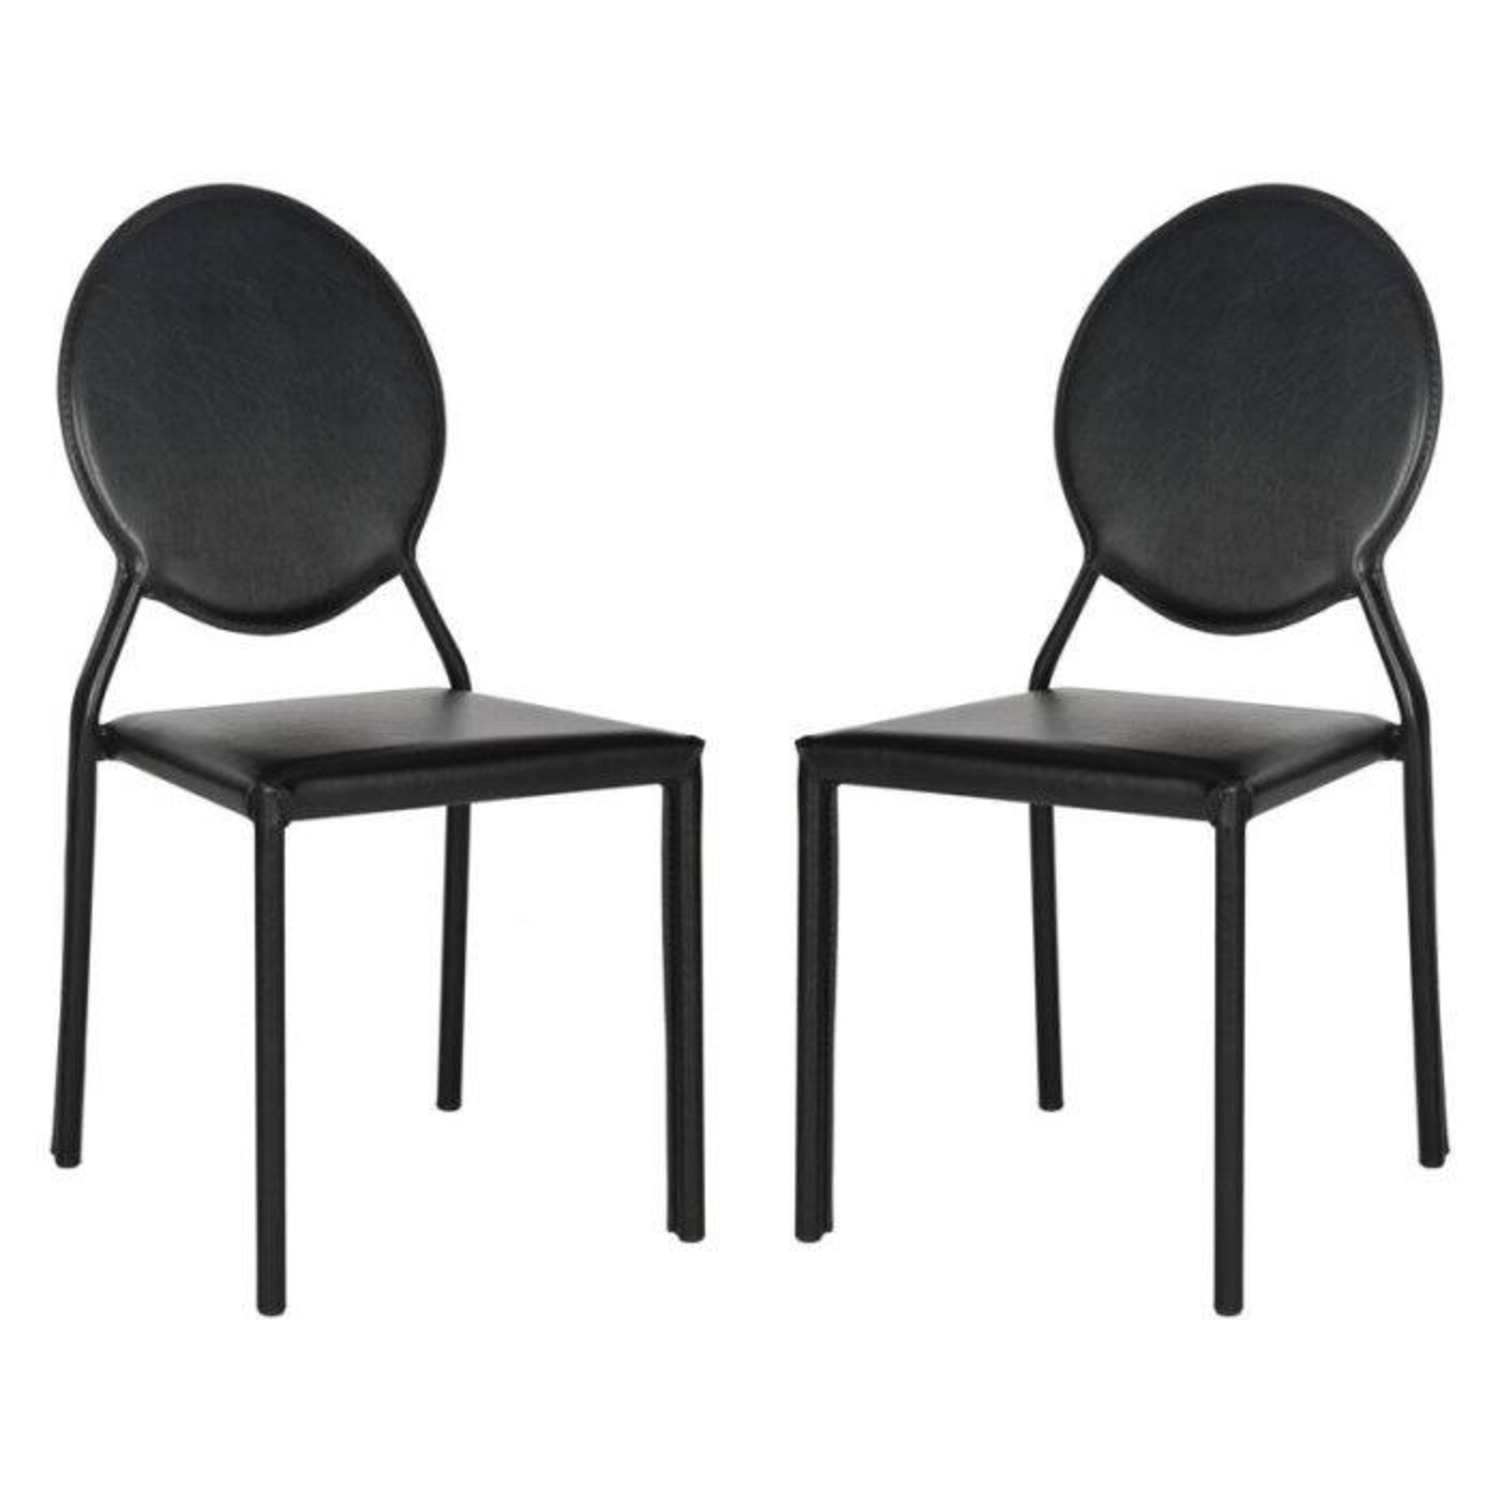 Safavieh Black Leather Dining Chairs - image-1